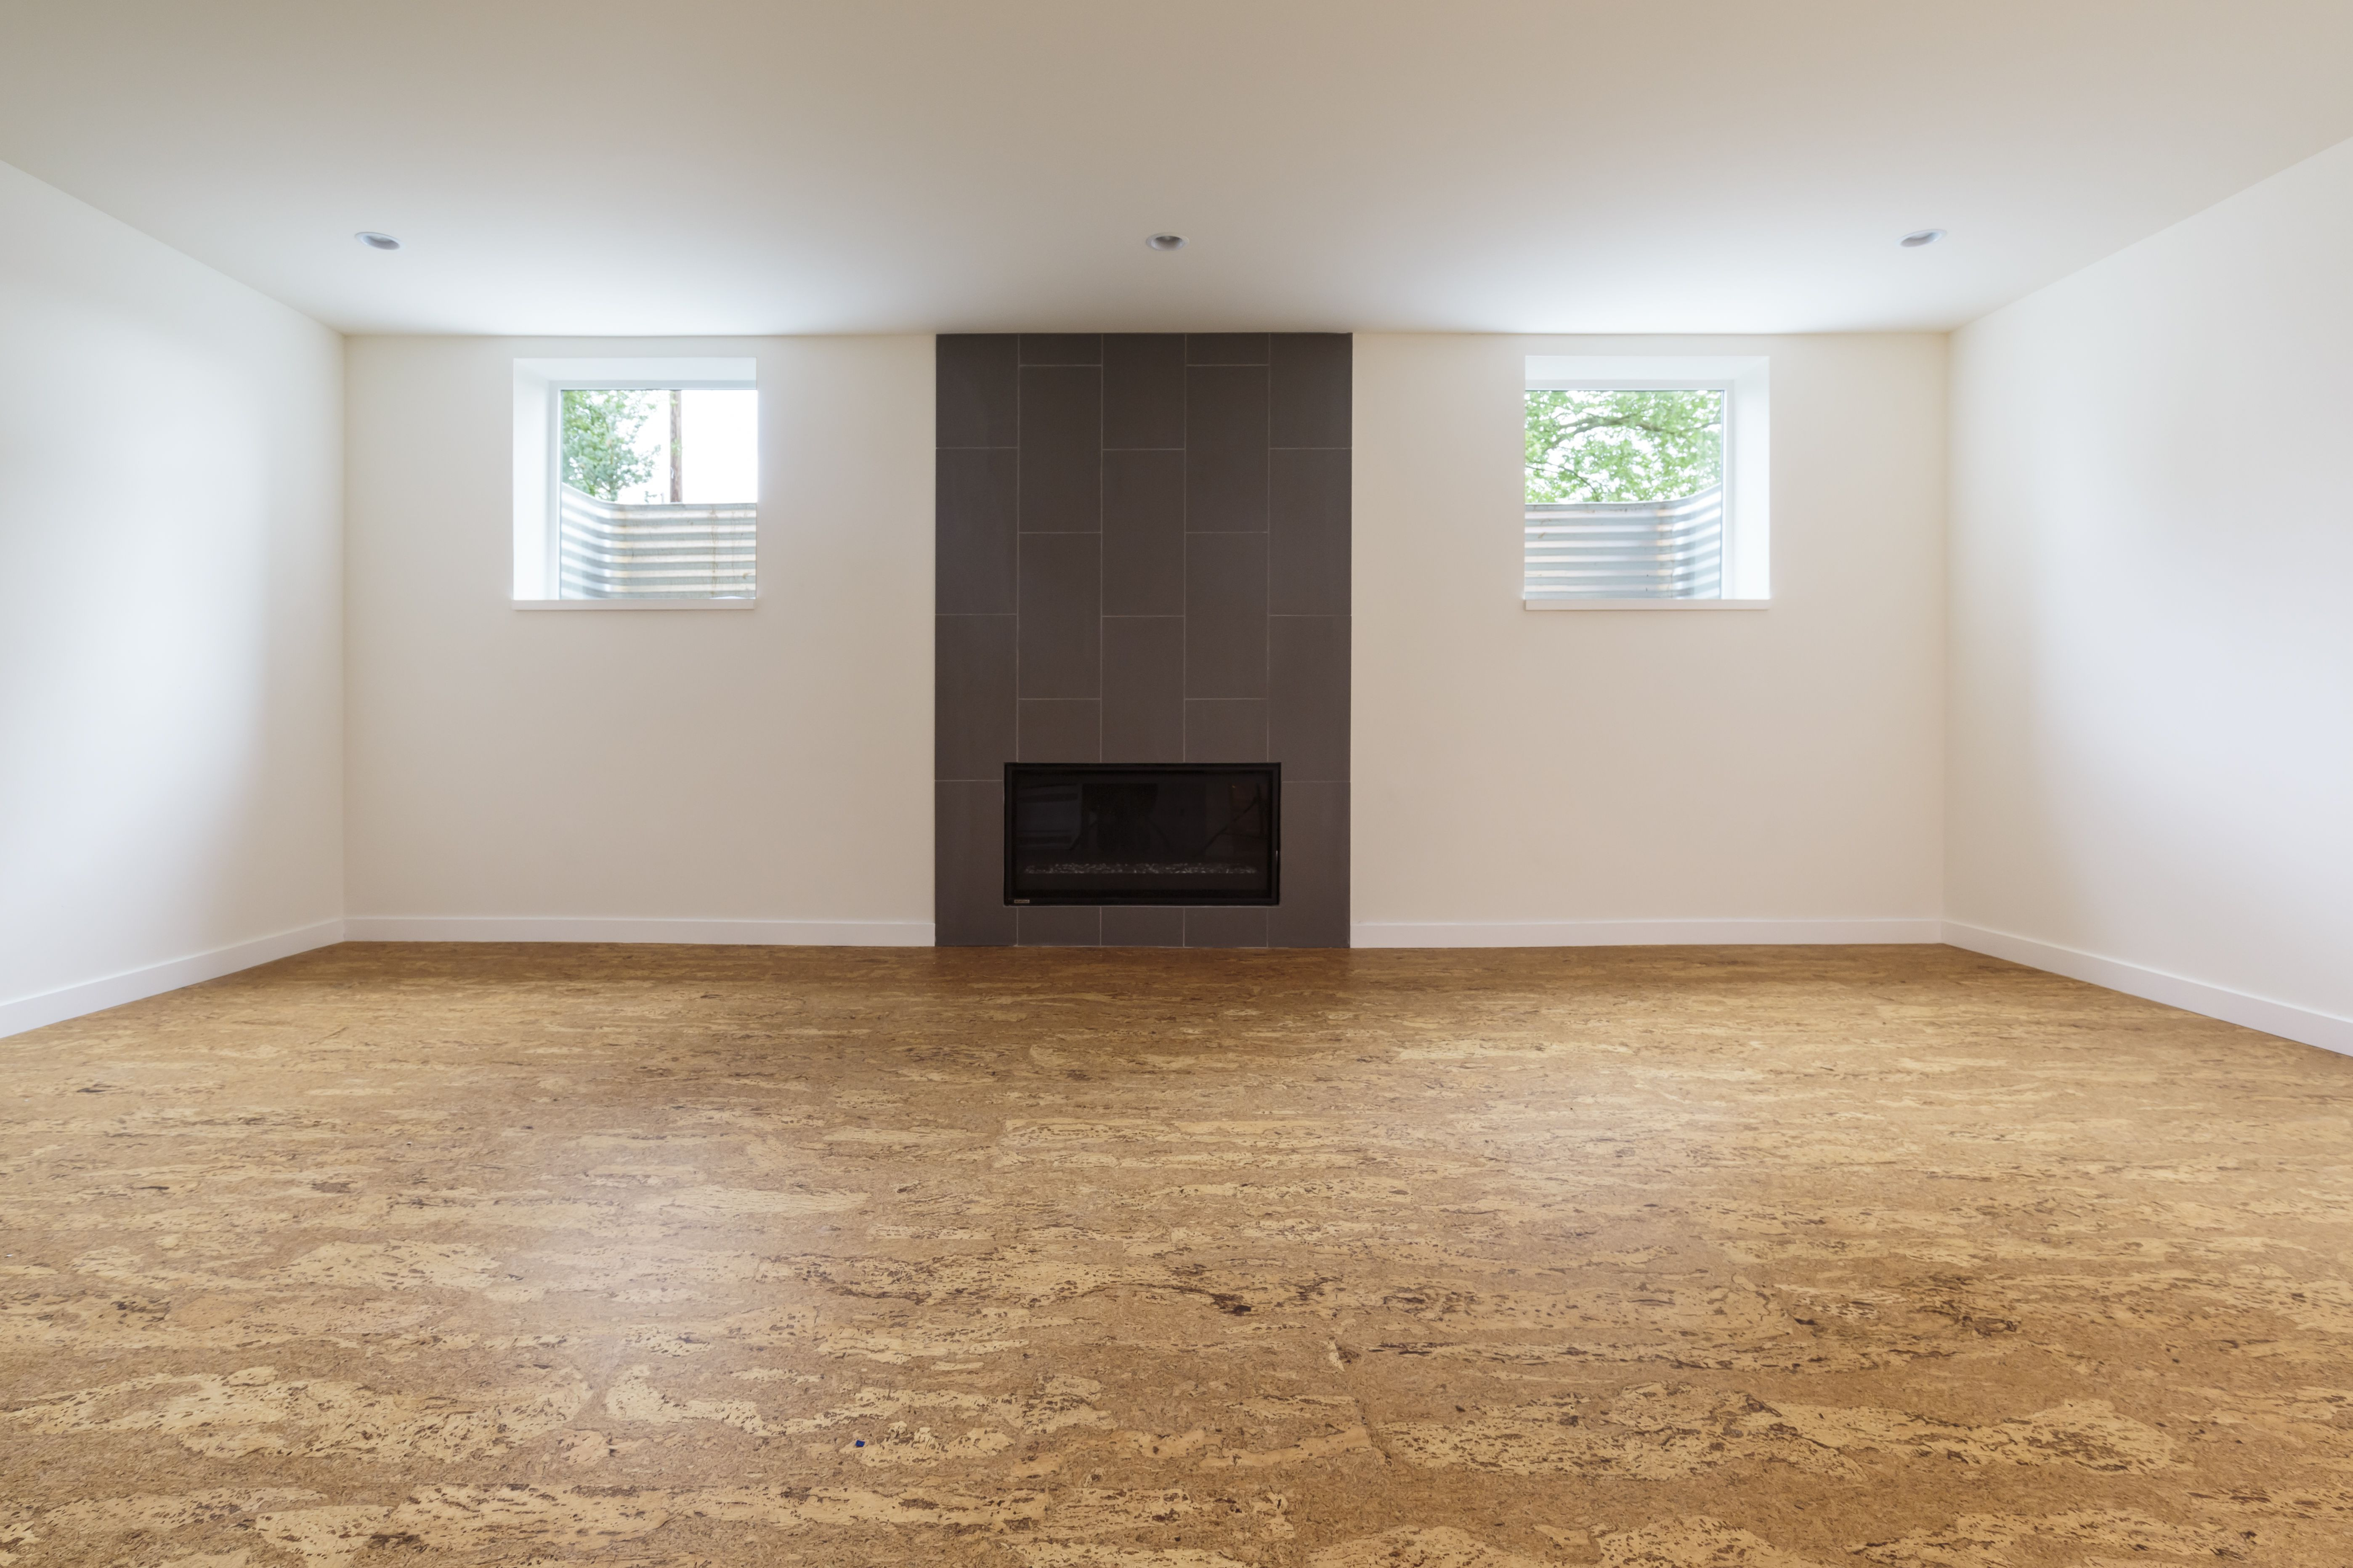 basement hardwood floor ideas of the best flooring options for senior citizens pertaining to cork flooring in an unfurnished home